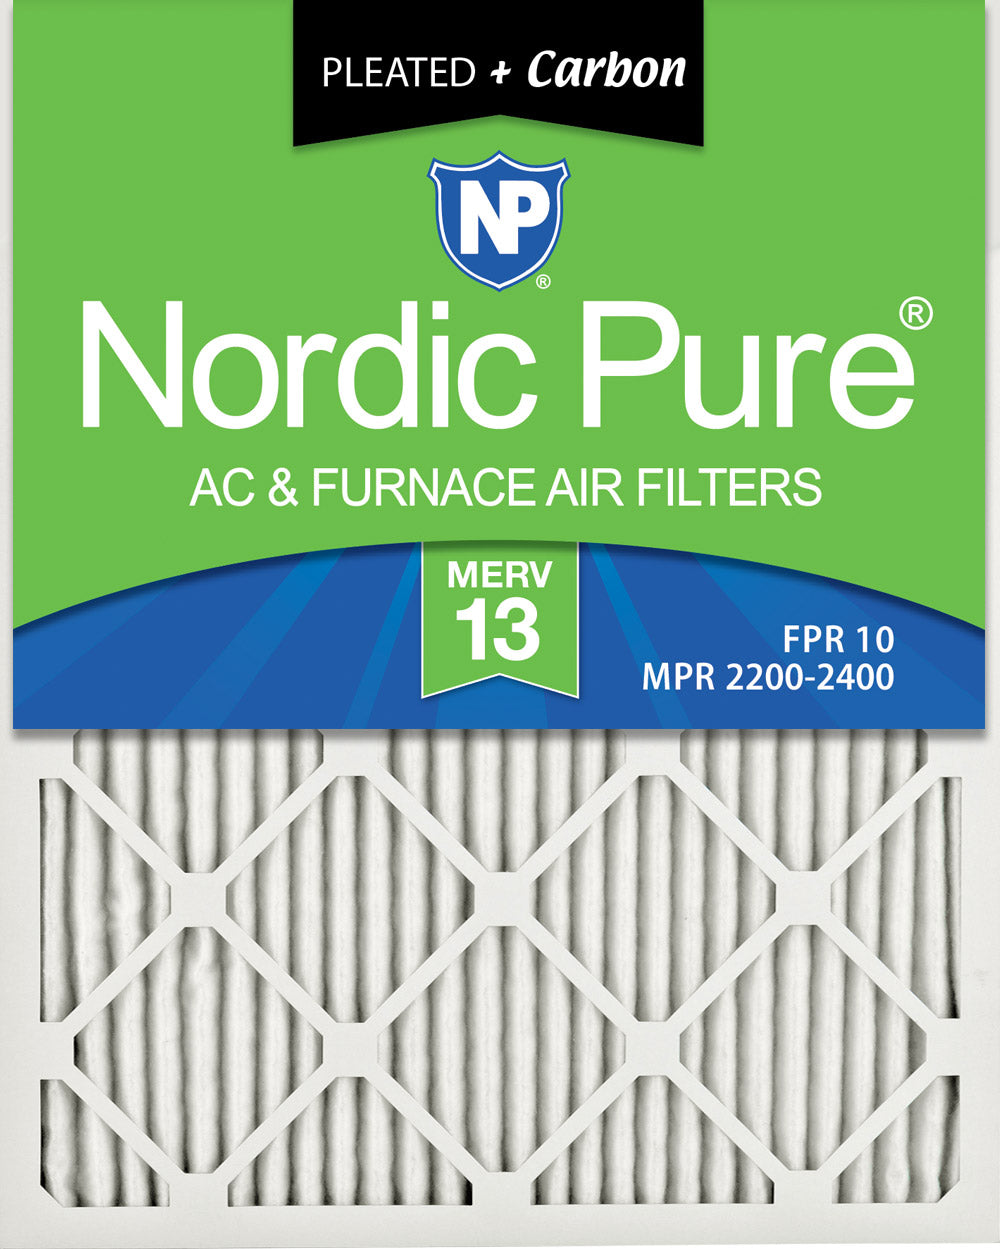 20x24x1 Pleated Air Filters MERV 13 Plus Carbon 12 Pack